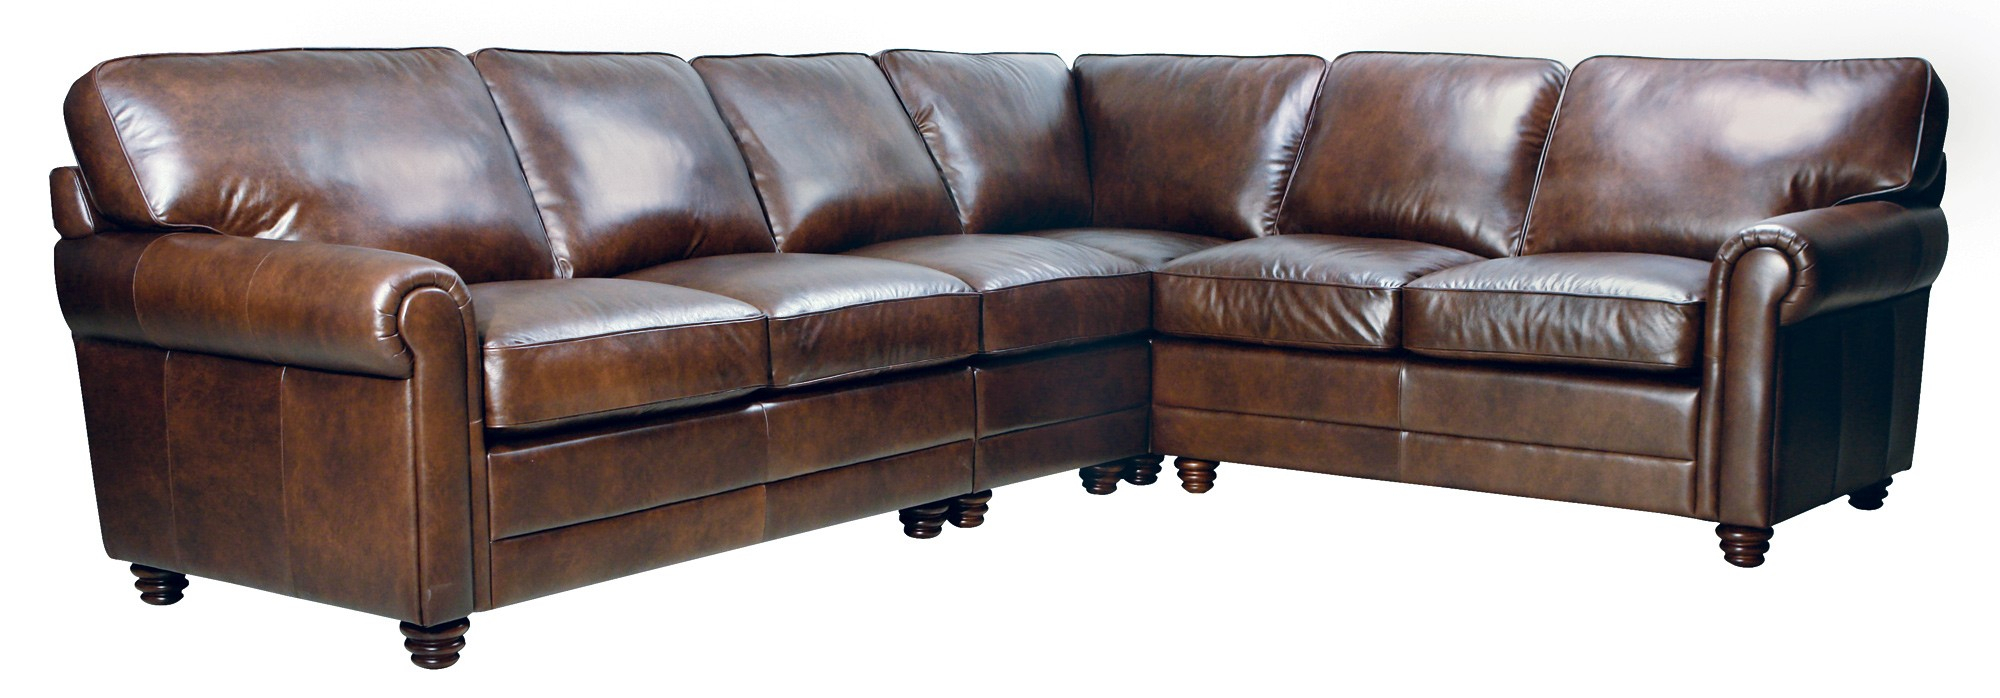 Andrew Sectional – Luke Leather Furniture Within Andrew Leather Sofa Chairs (View 4 of 25)